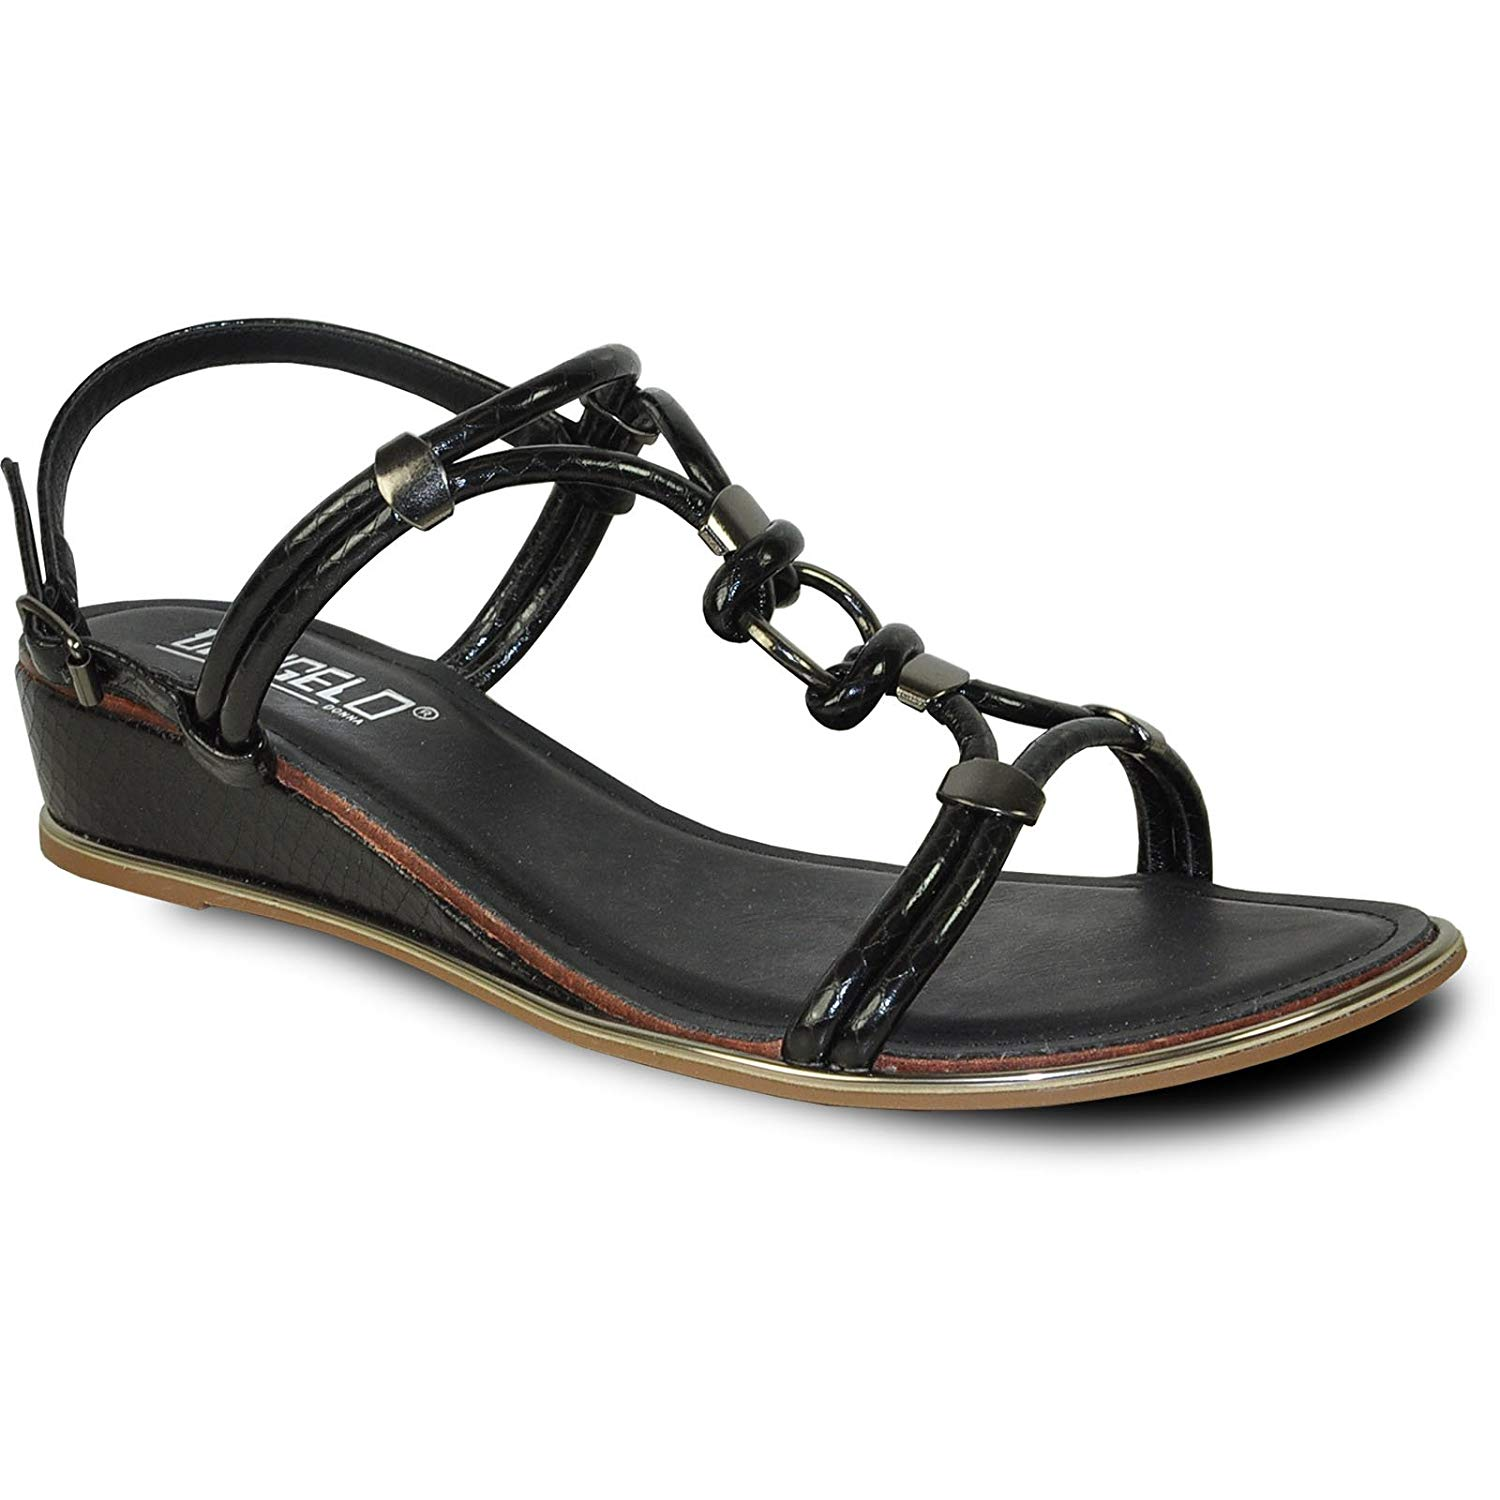 f2b61369acd43 Get Quotations · VANGELO Women Sandal Madison Fashion Wedge Sandal Black